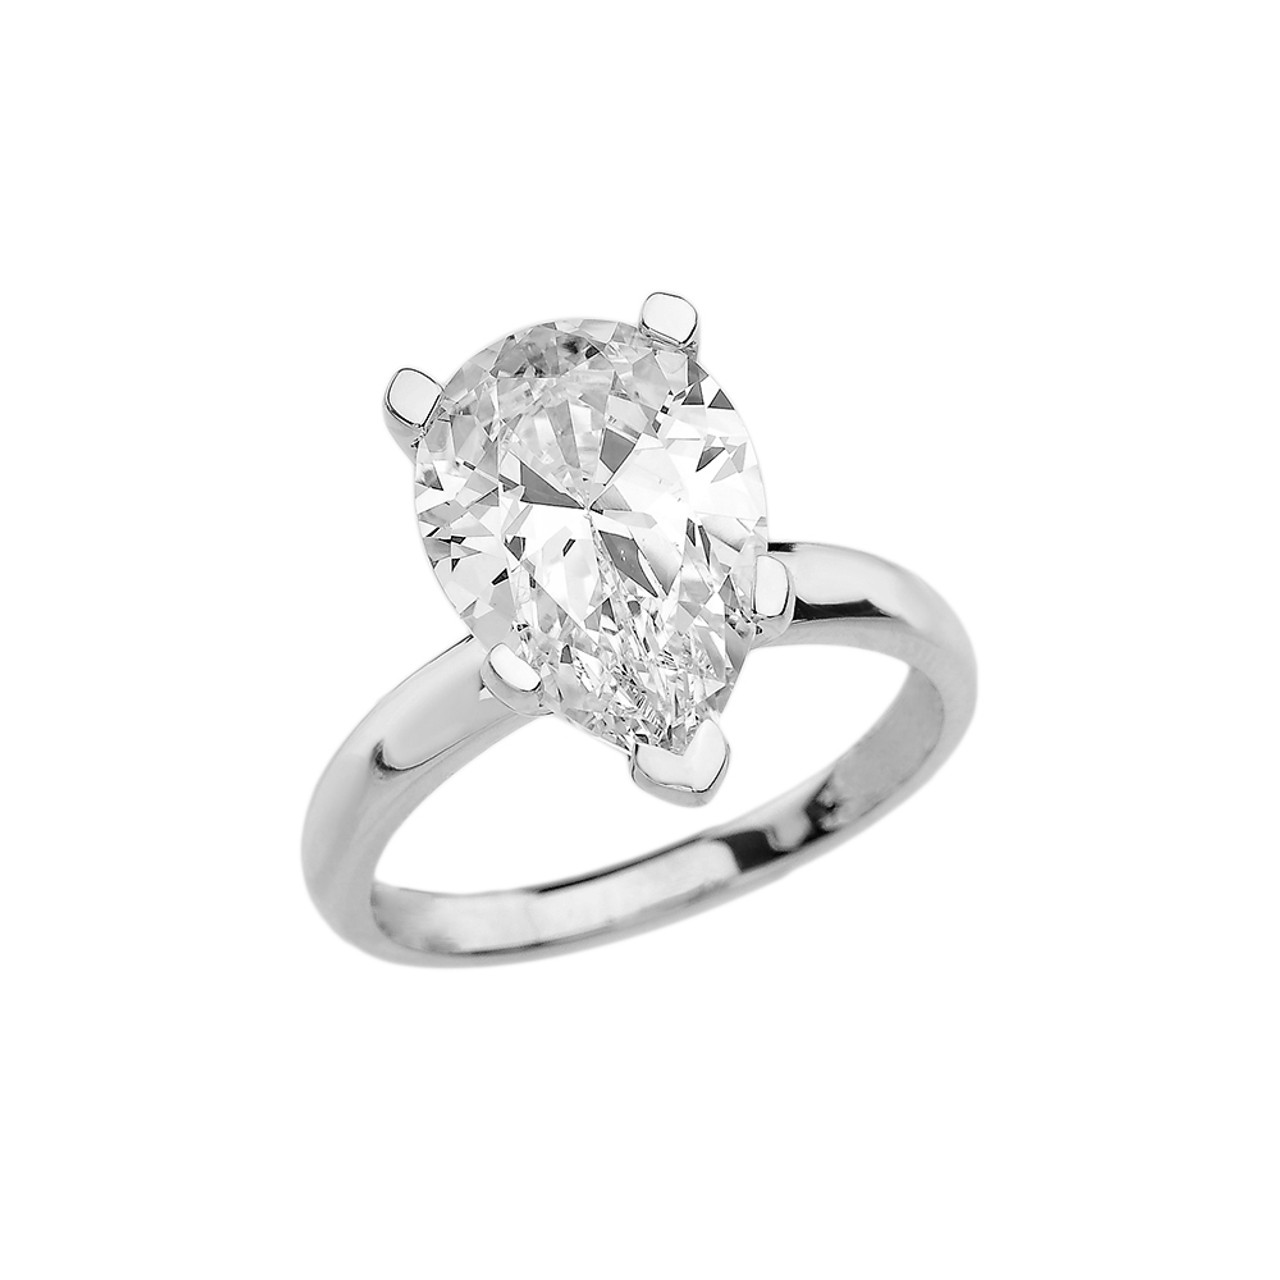 White Gold Pear Shape Cz Engagement Proposal Solitaire Ring